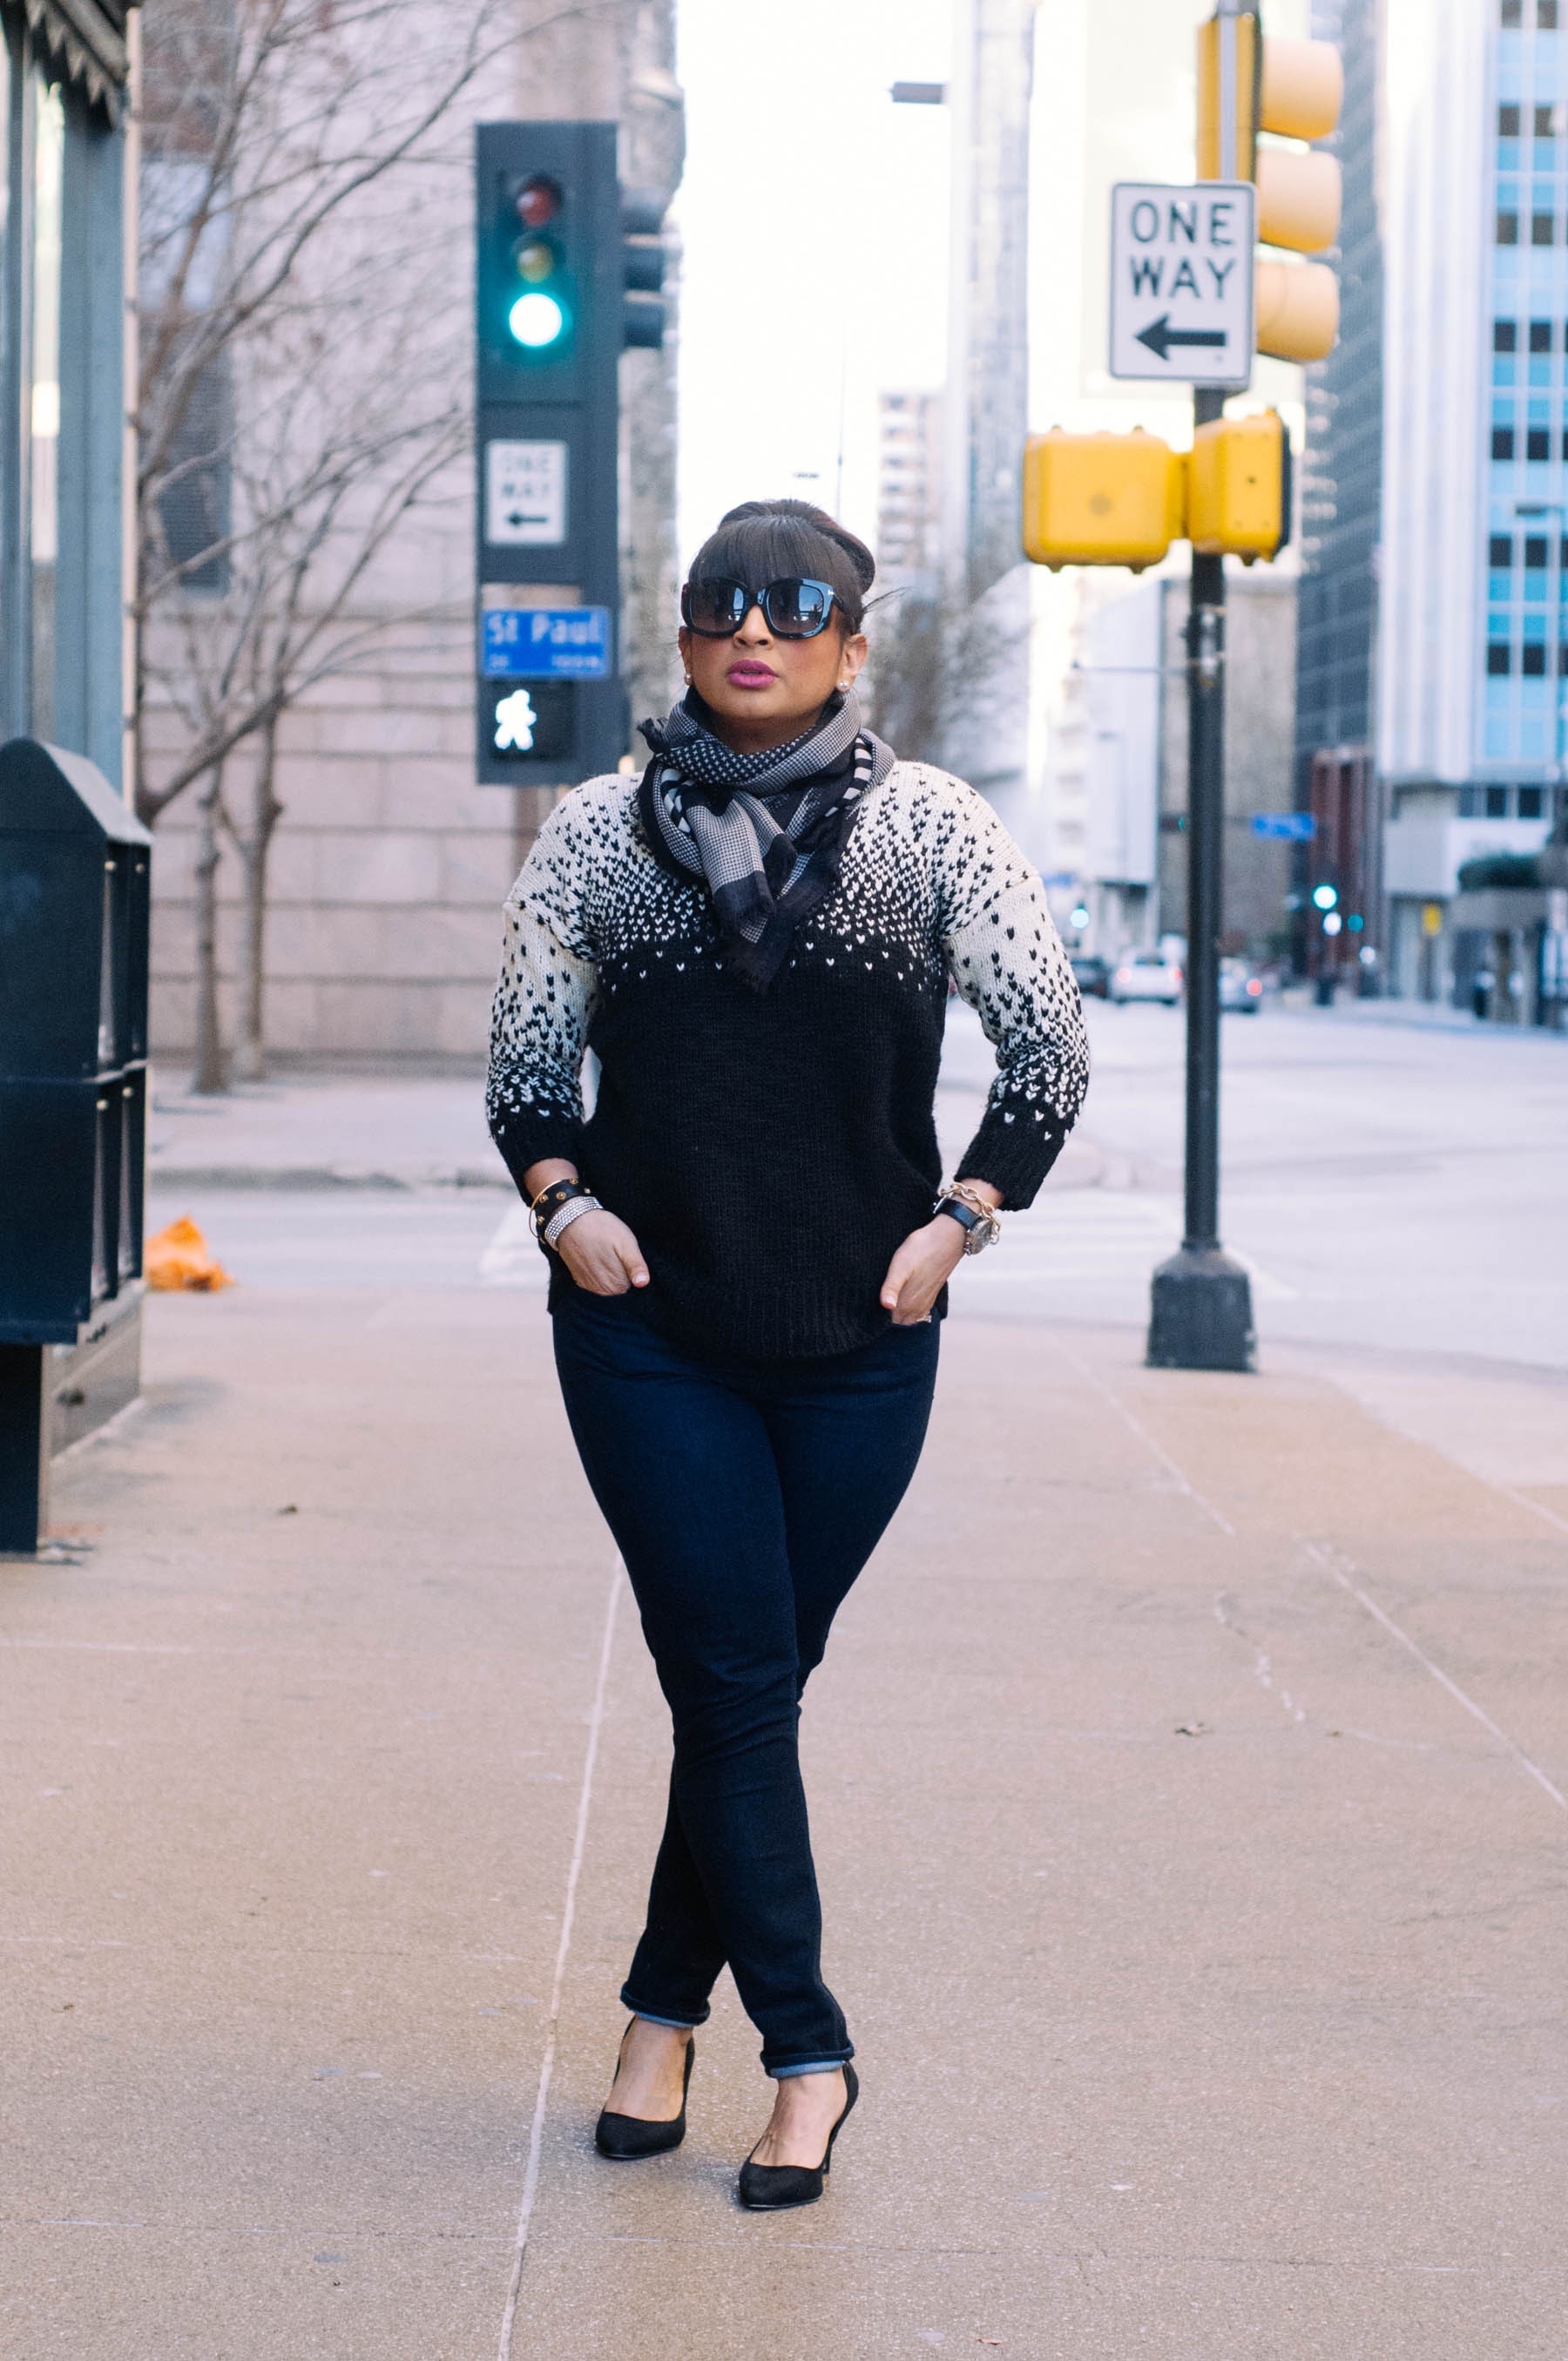 Sweater: Madewell (similar  here ) | Scarf: Madewell (also love  this one ) | Jeans:  Madewell  | Shoes: H&M (similar  here ) | Jewelry:  J.Crew Factory , Stella & Dot, Cara | Watch: Fossil (similar  here ) | Sunglasses:  Tom Ford